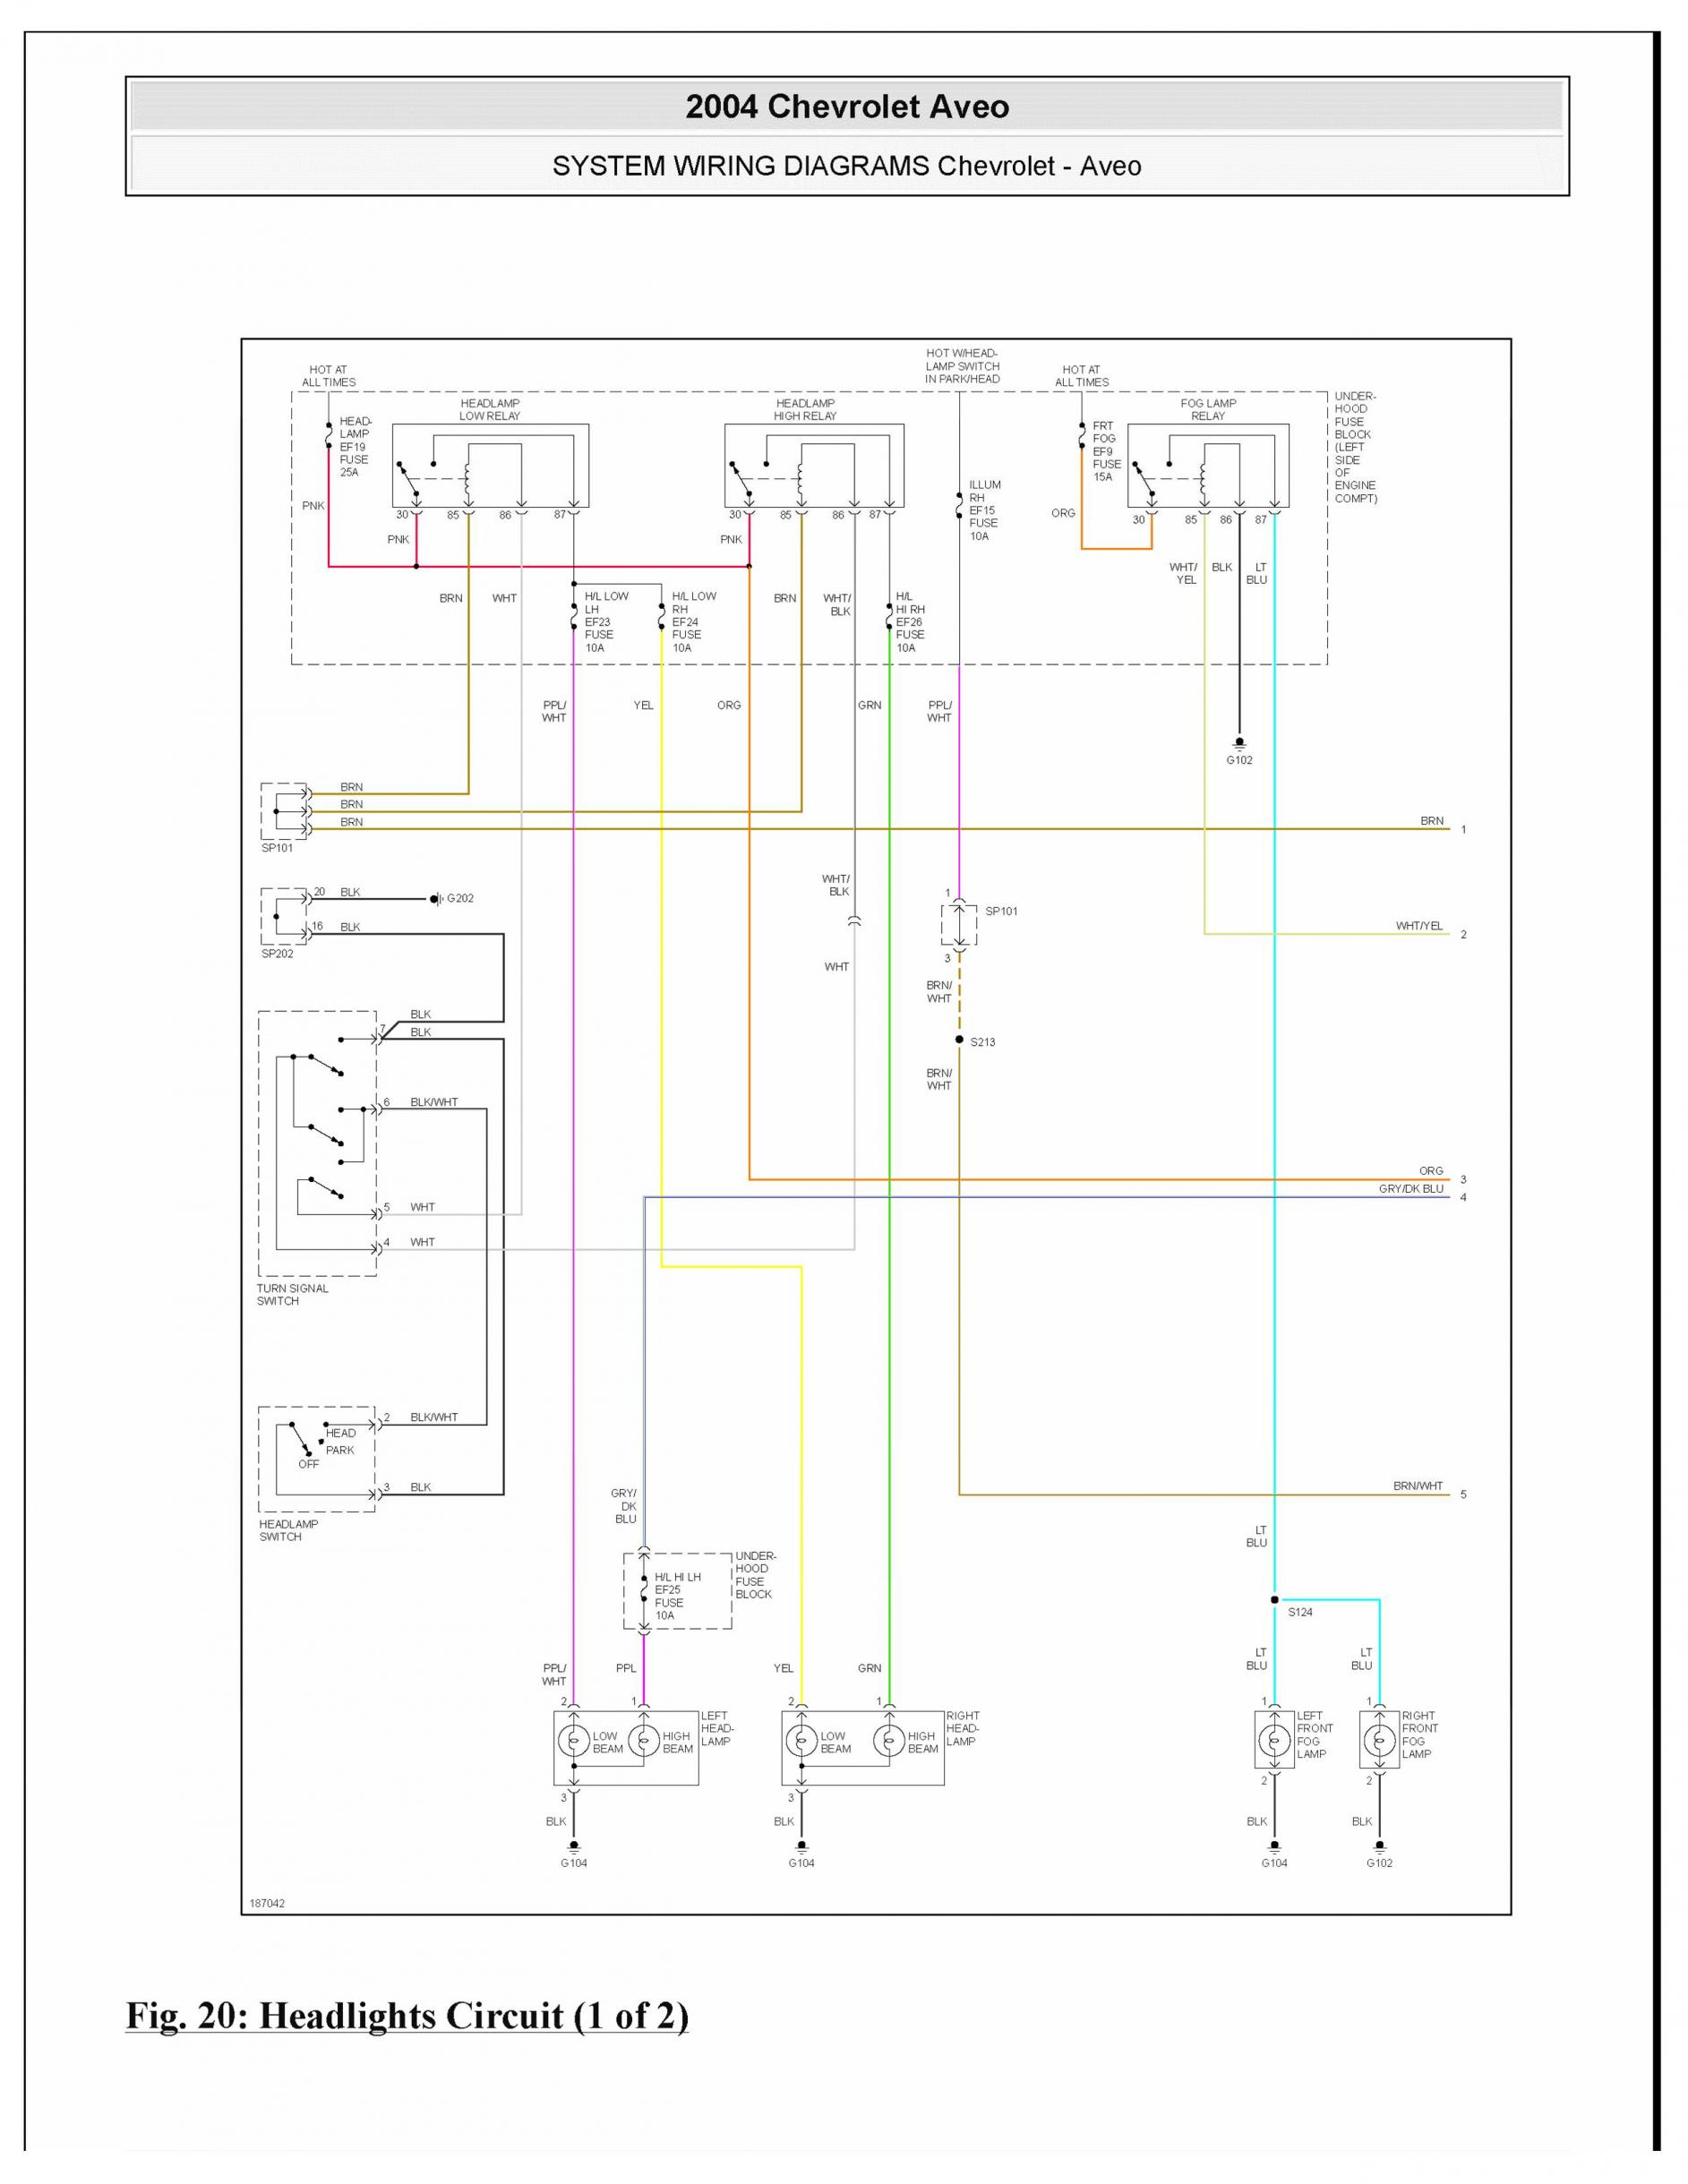 hight resolution of chevrolet aveo forum and owners club aveoforum com wiring diagram for 2008 chevy aveo wiring diagram for chevy aveo